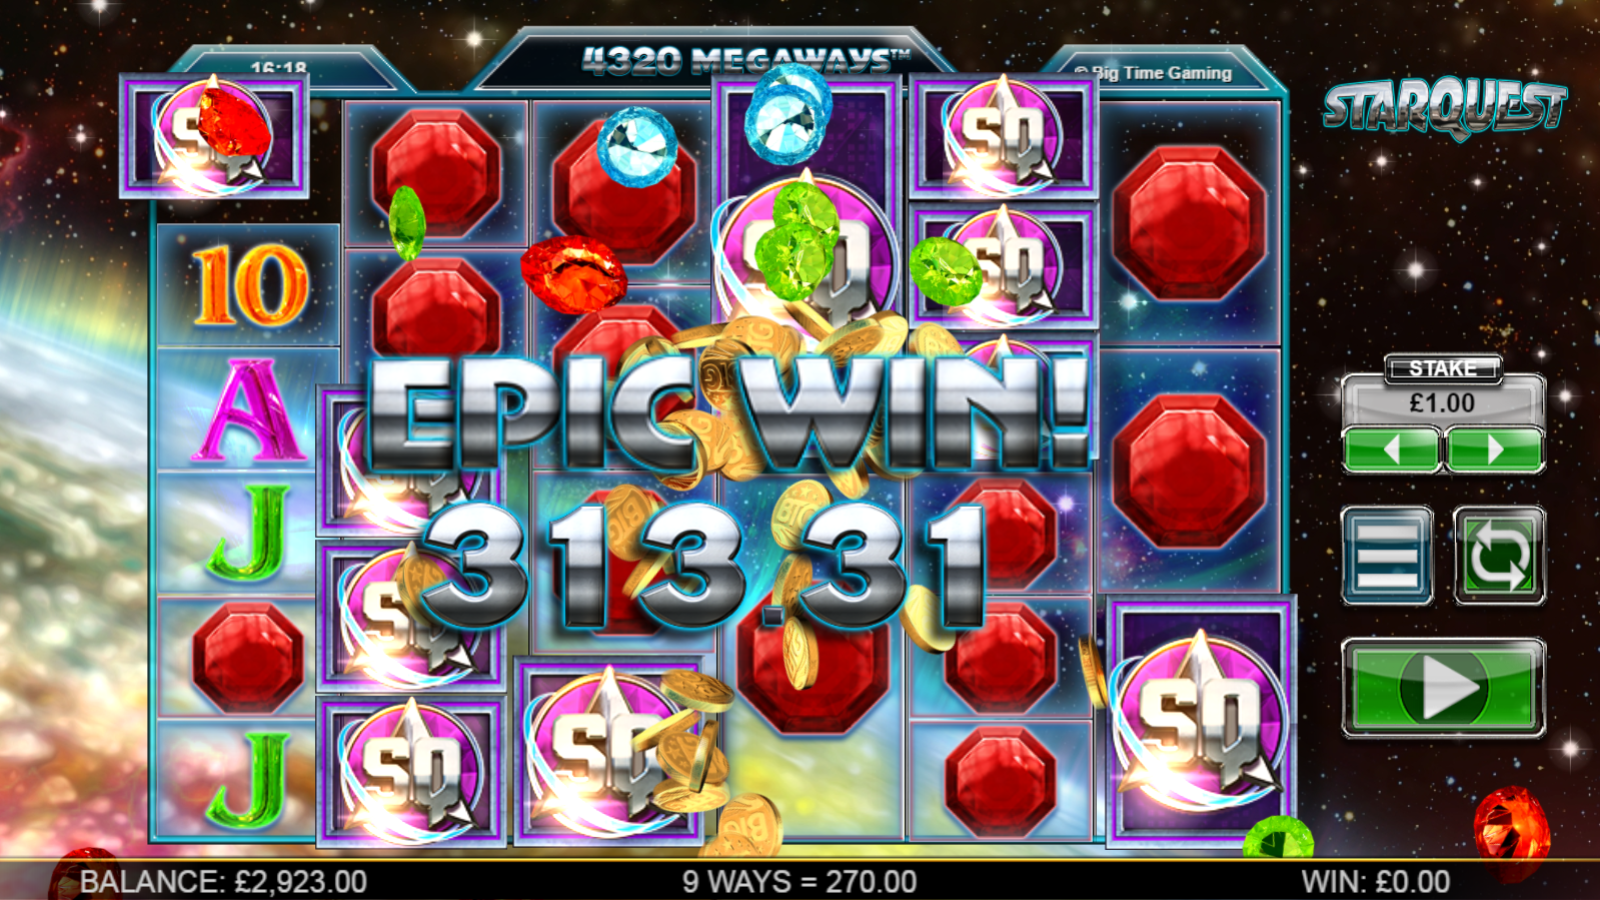 big time gaming slots star quest big win screenshot